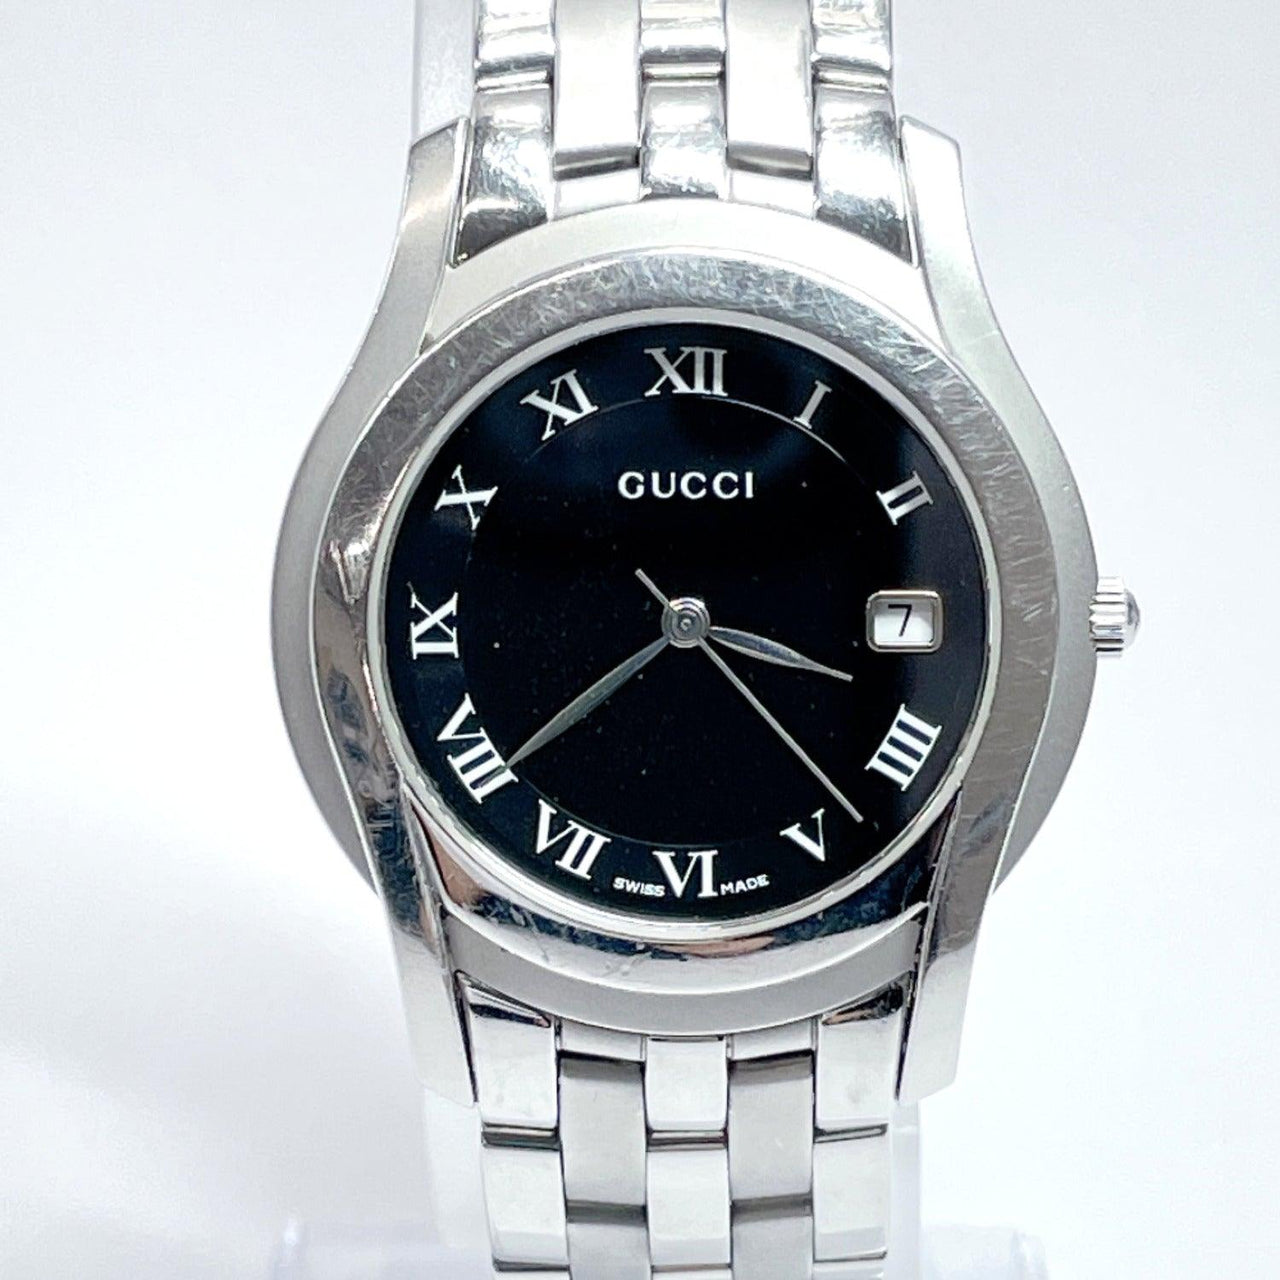 GUCCI Watches 5500M quartz Stainless Steel Silver unisex Used